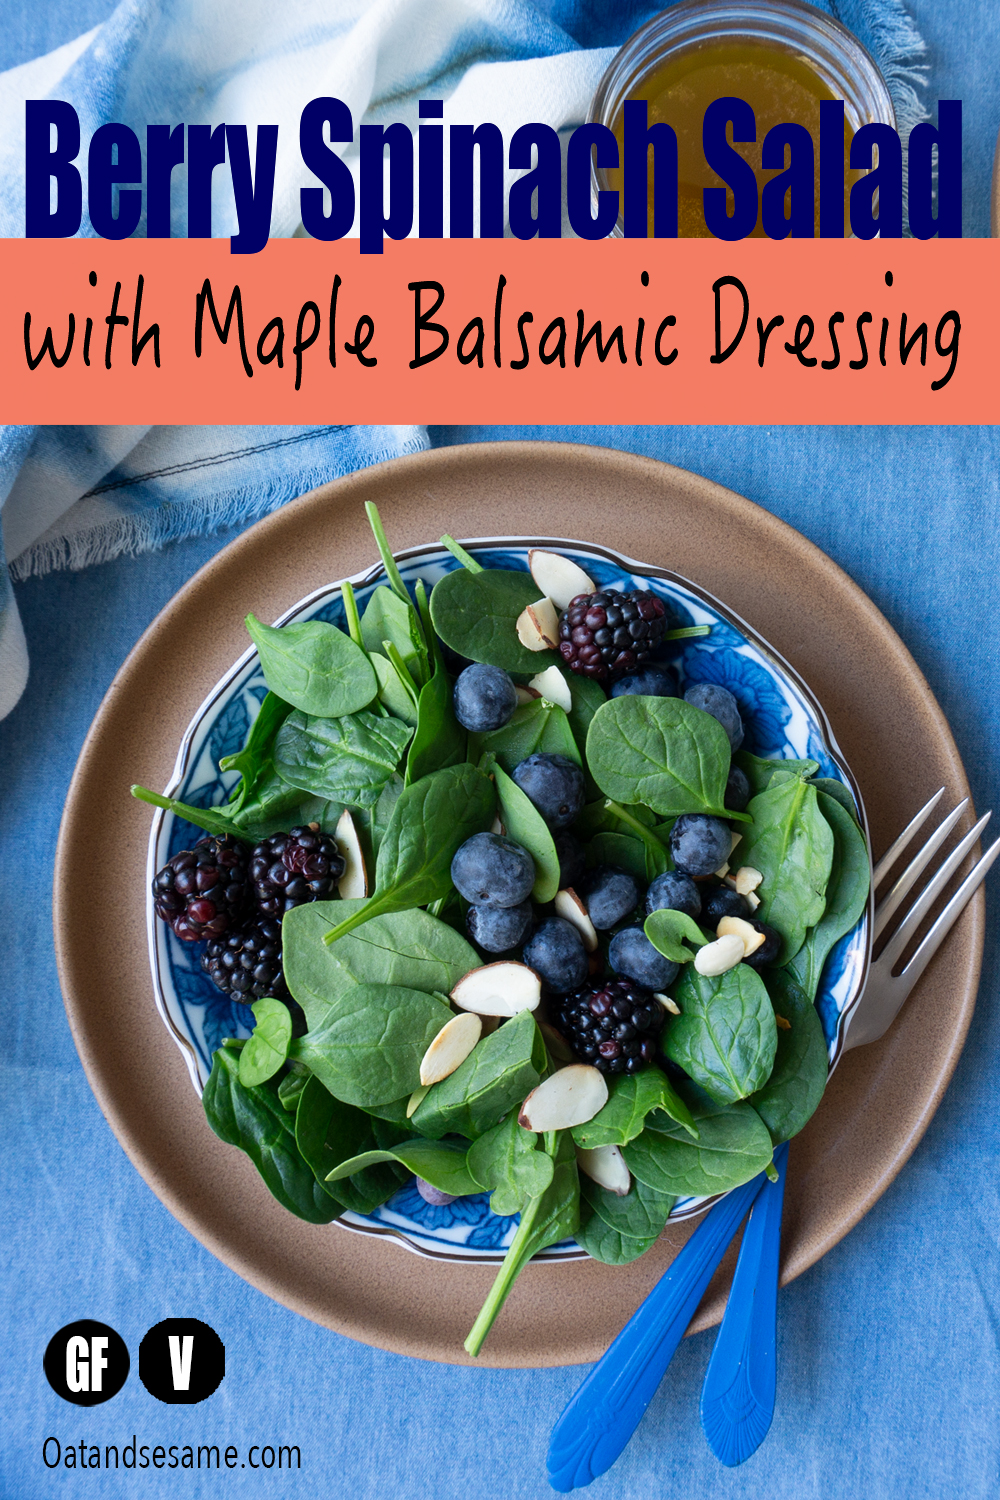 This classic Berry Spinach Salad is perfectly balanced with toasted almonds, fresh berries and dressed with maple balsamic vinaigrette. #Salad #Spinach #vegan #vegetarian #healthrecipes at OatandSesame.com #oatandsesame